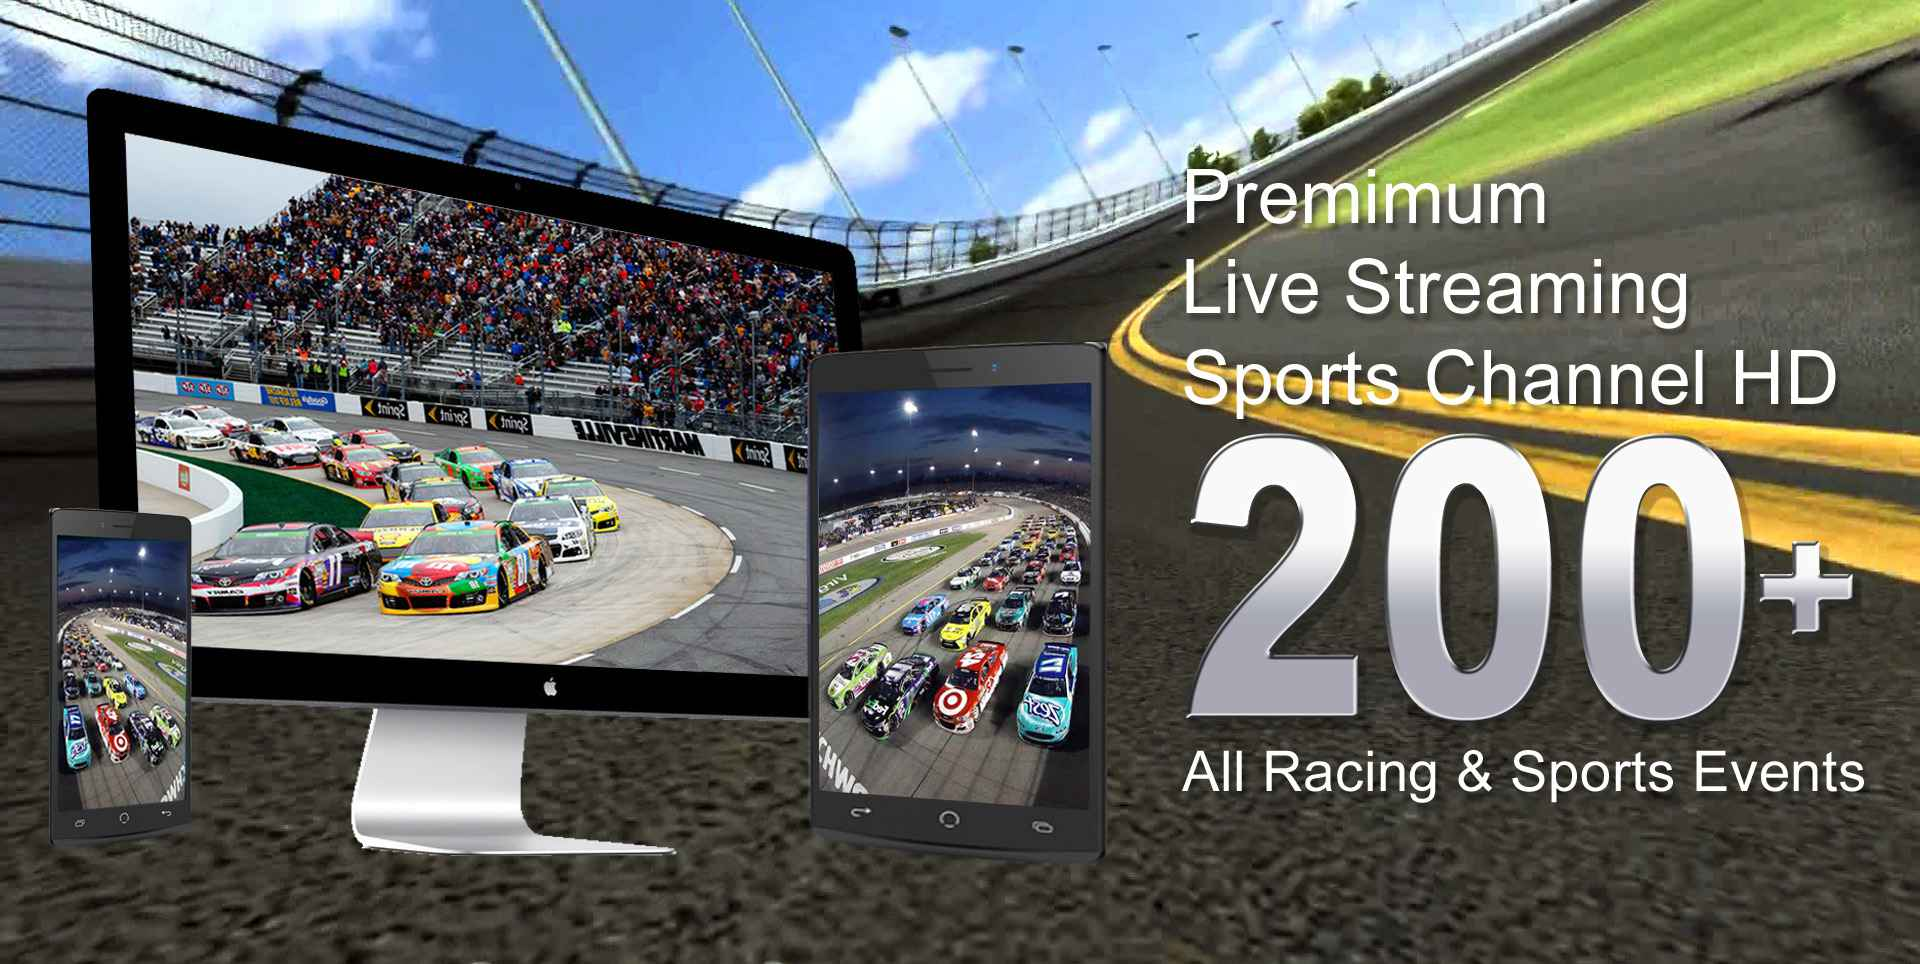 fox-nascar-pocono-400-streaming-online